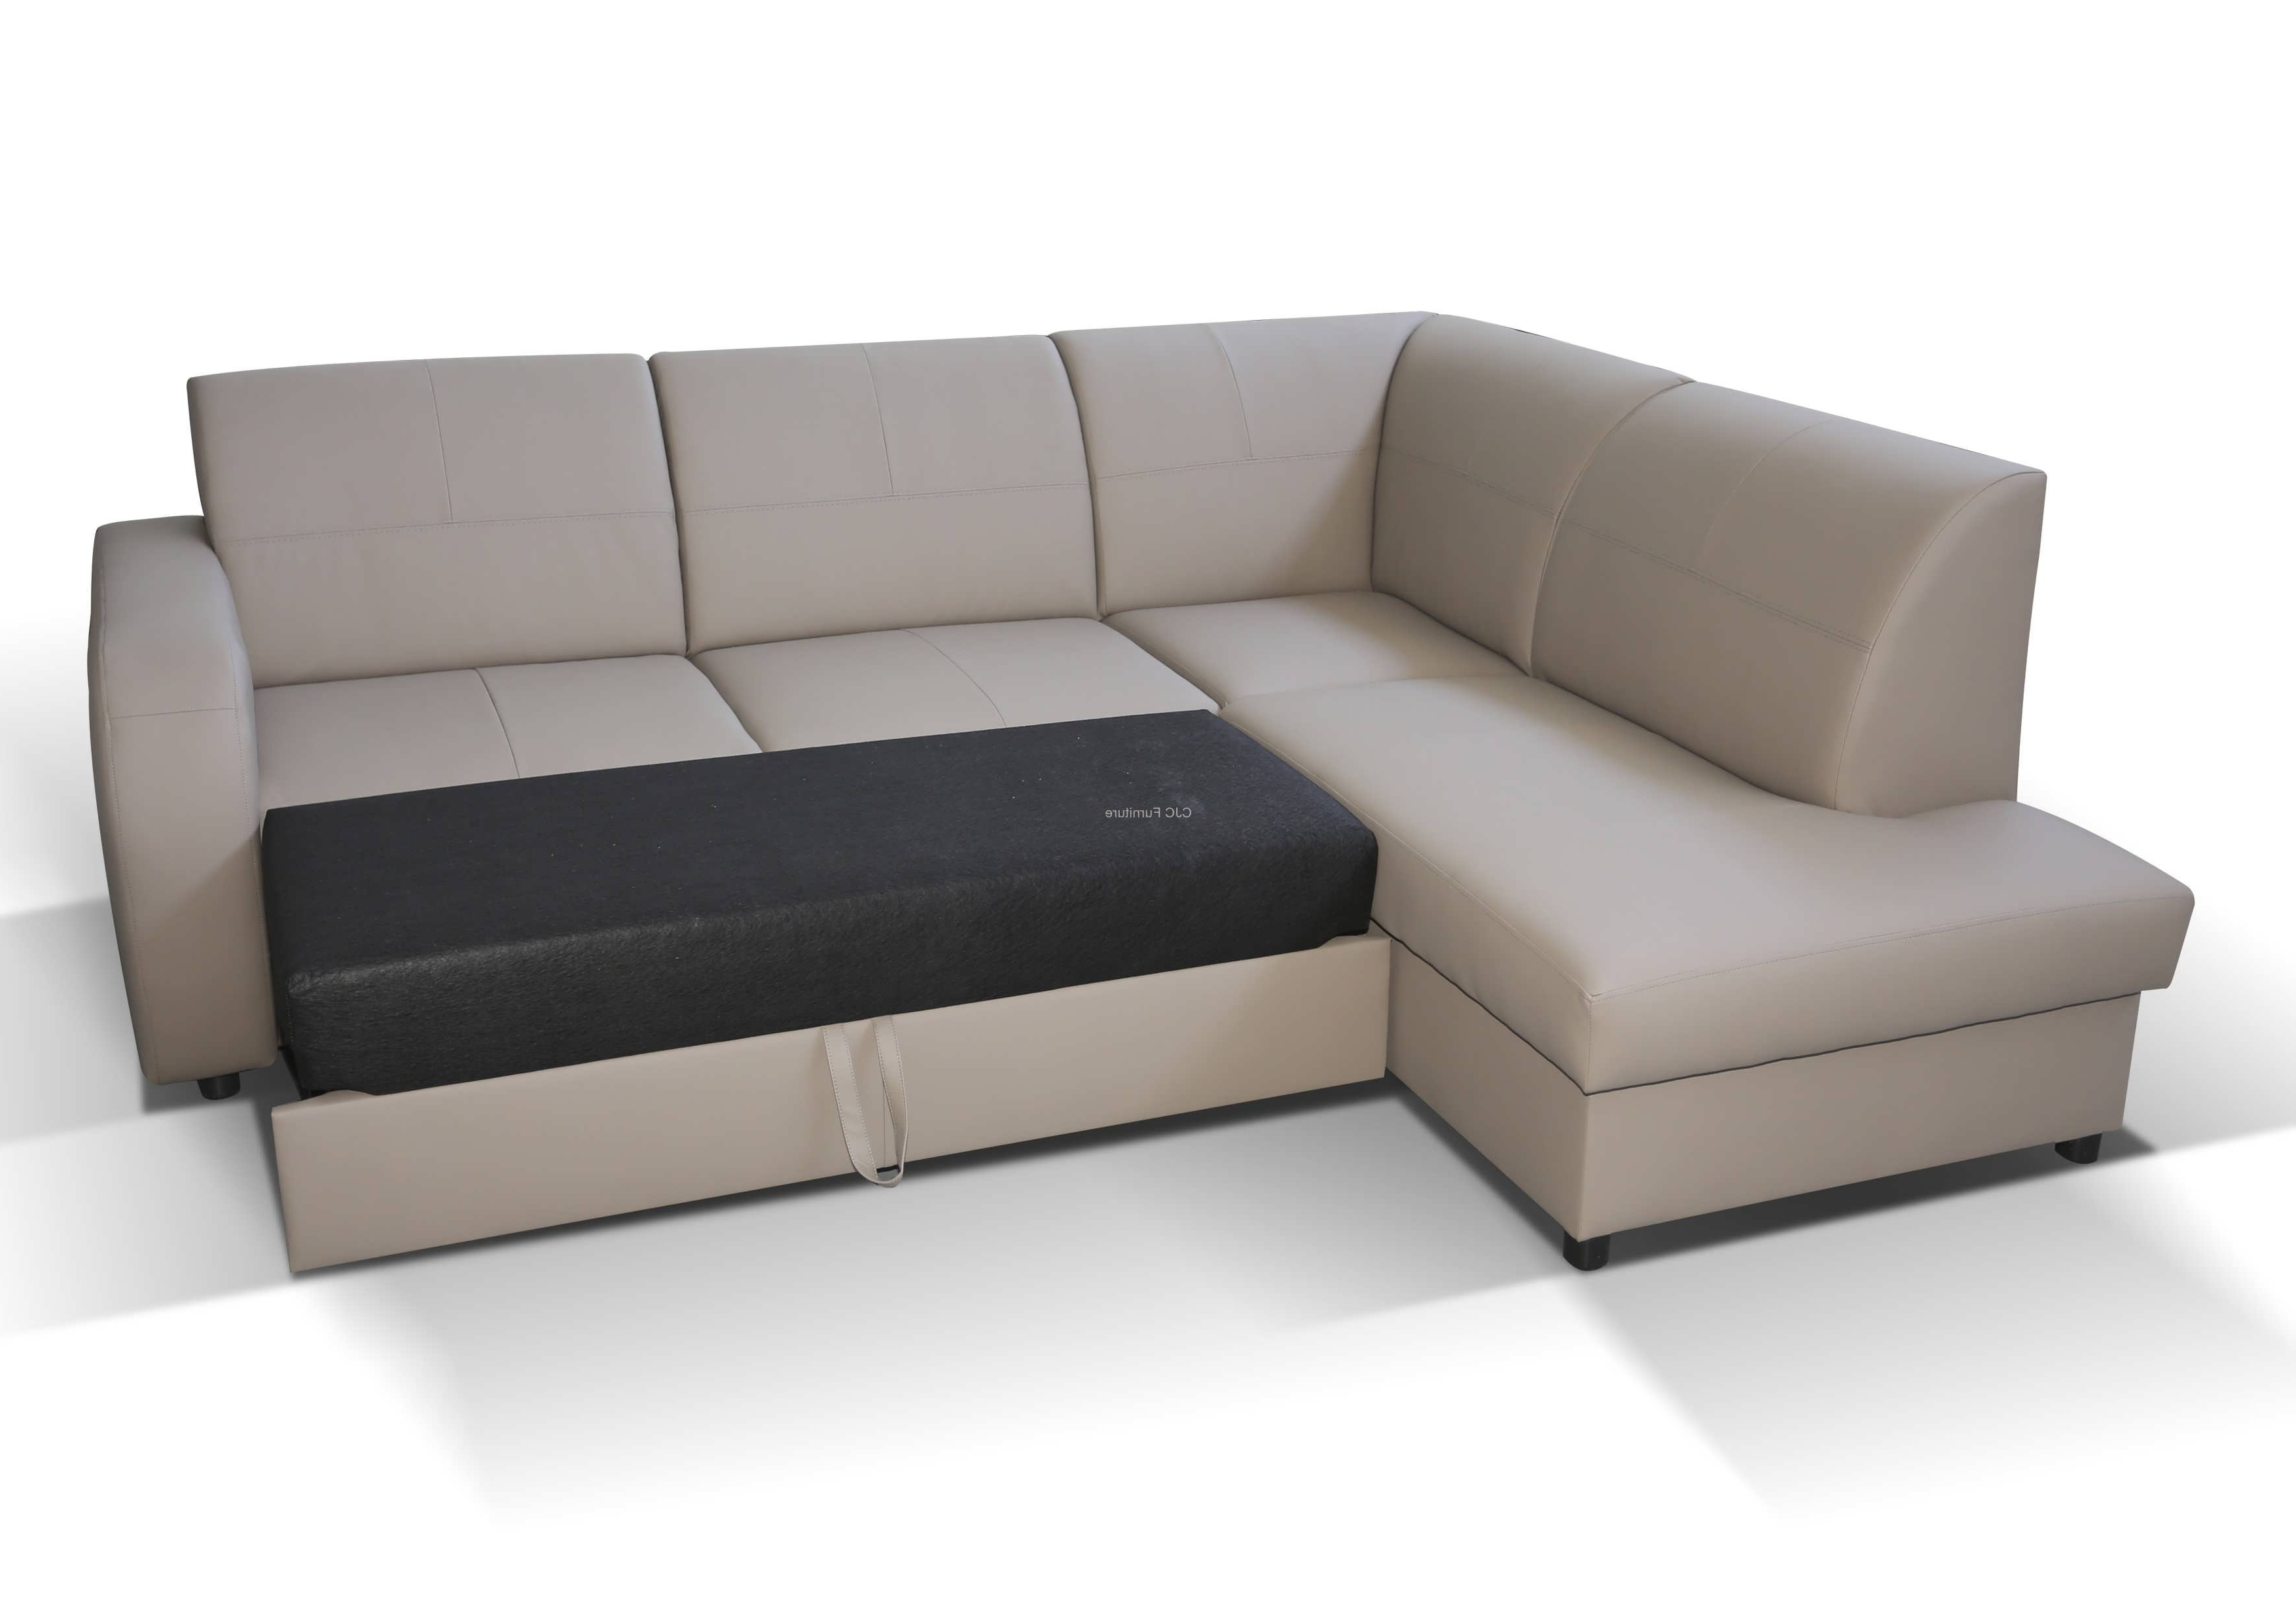 Corner Sofa Beds With Chaise Intended For Most Recently Released Sofa : Sofa Beds Distressed Leather Sofa Sectional Sofas Velvet (View 7 of 15)